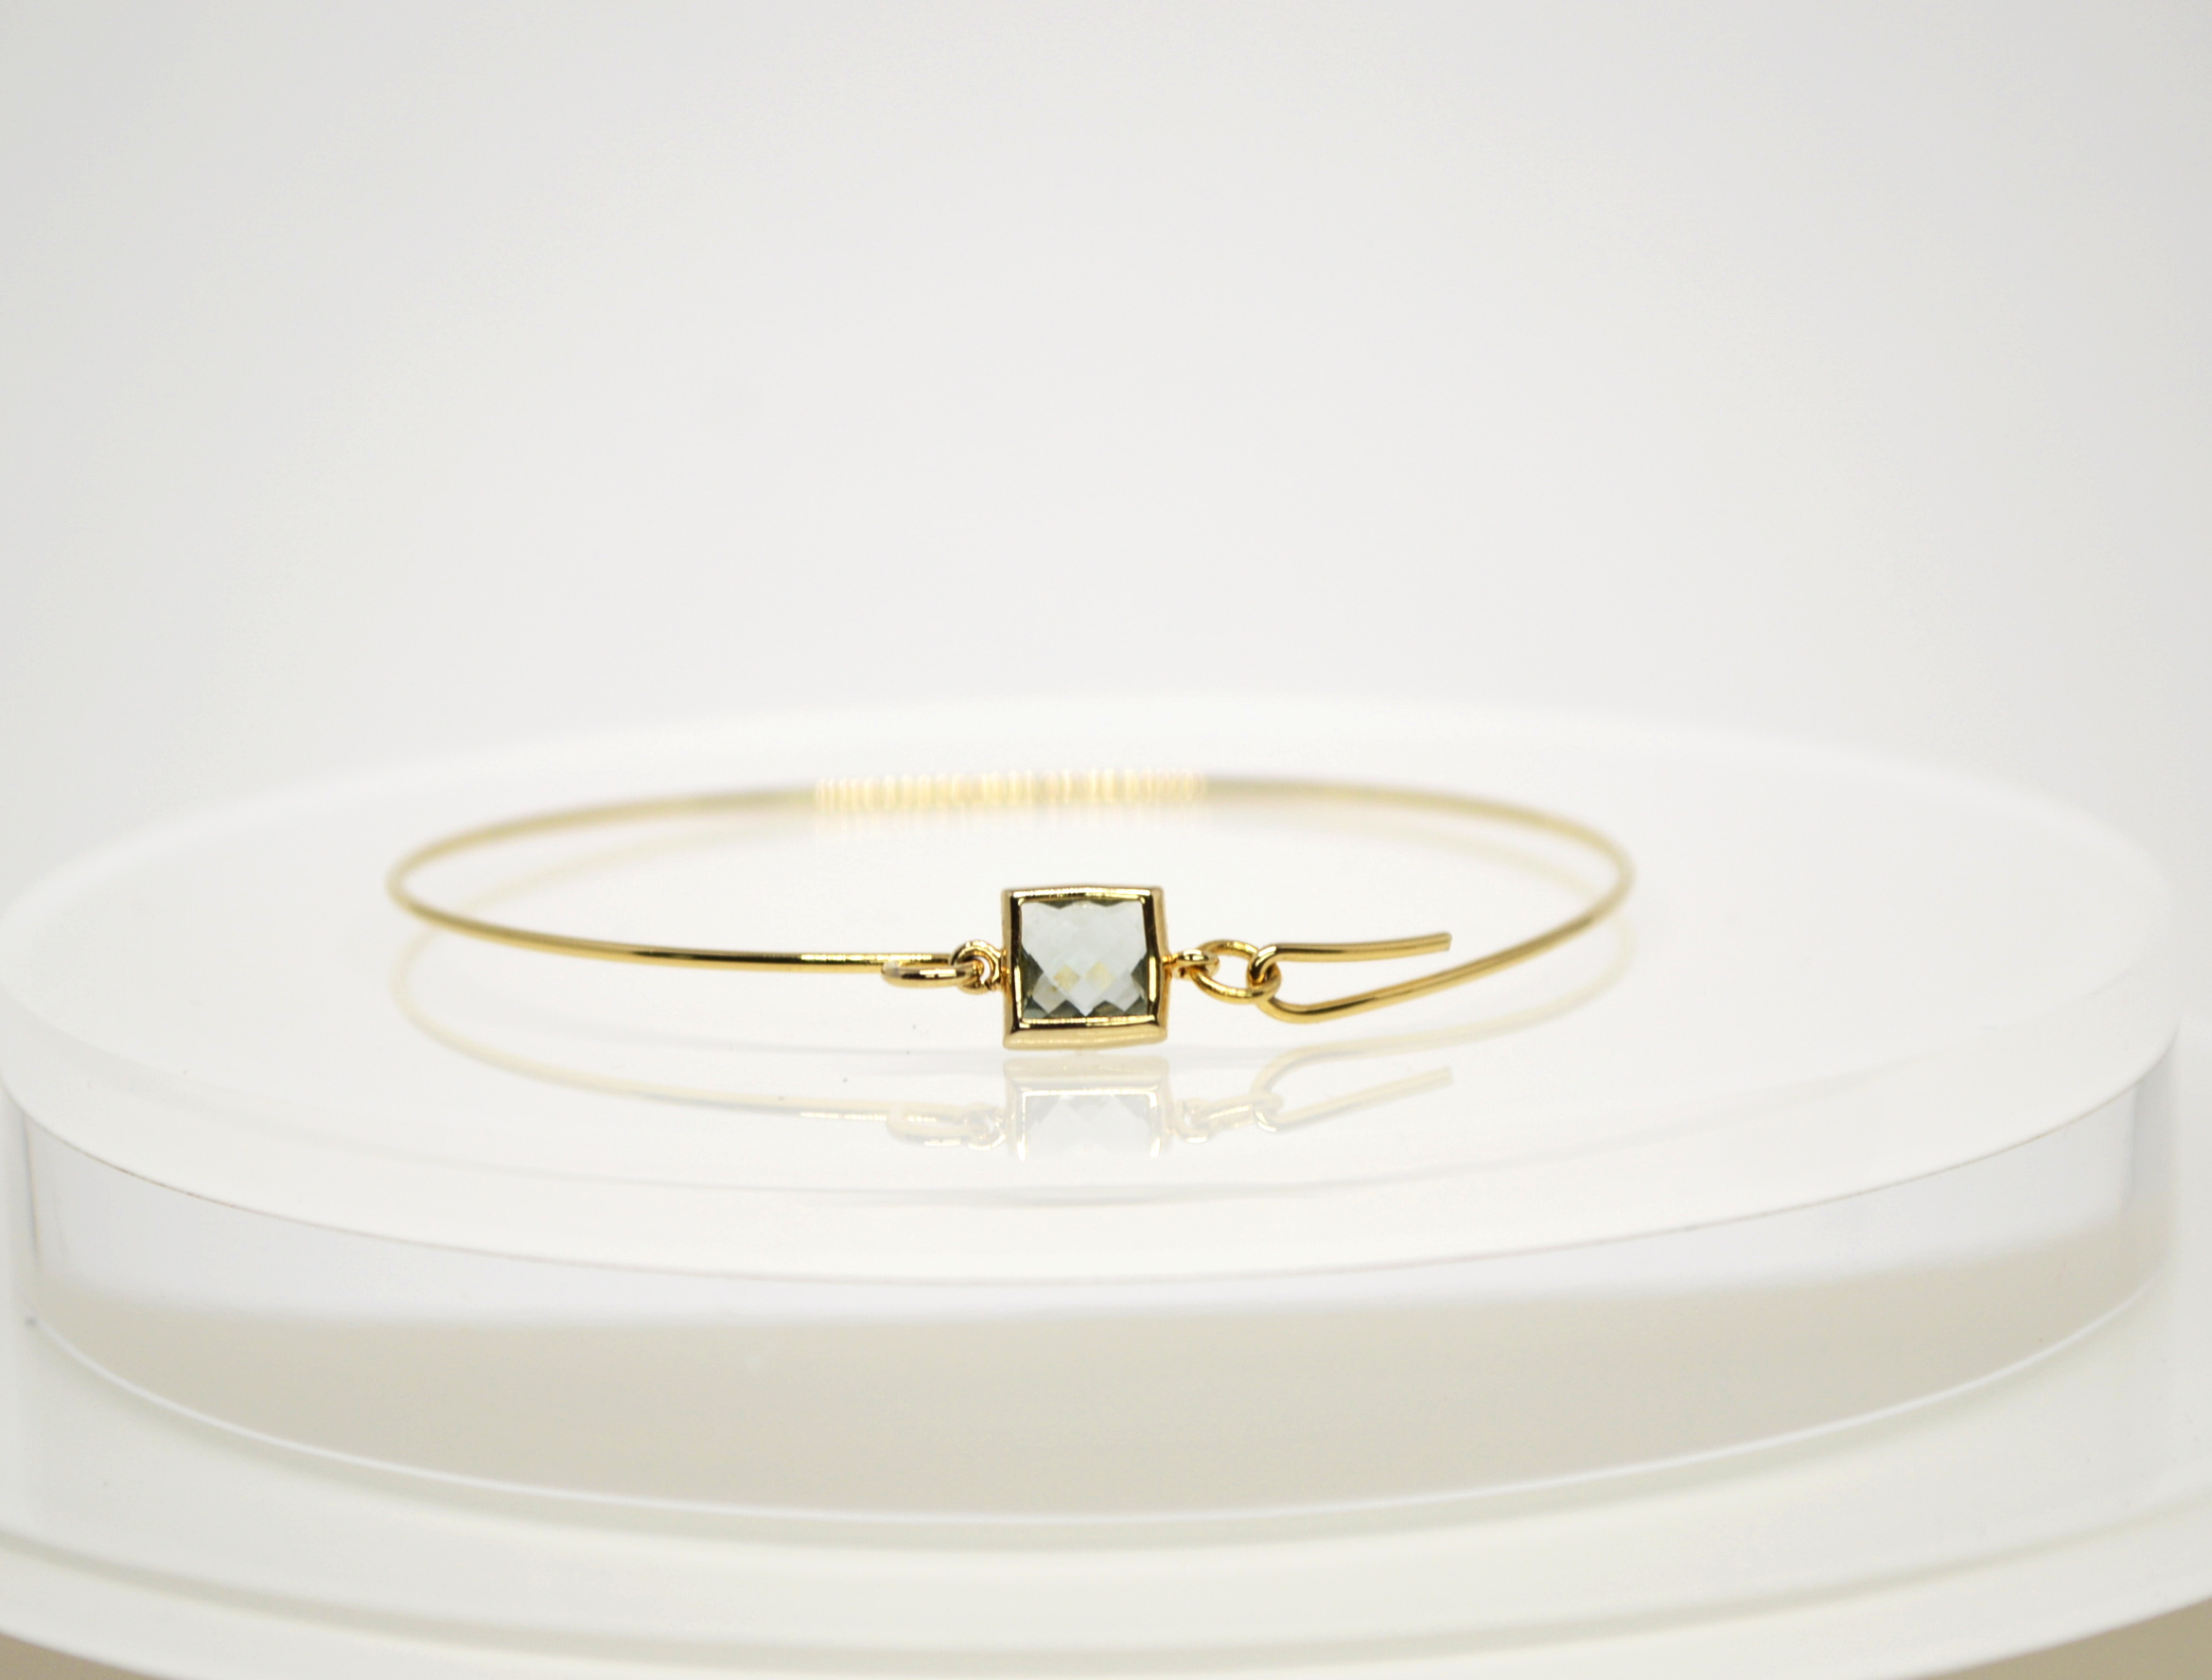 Faceted Square Glass bangle